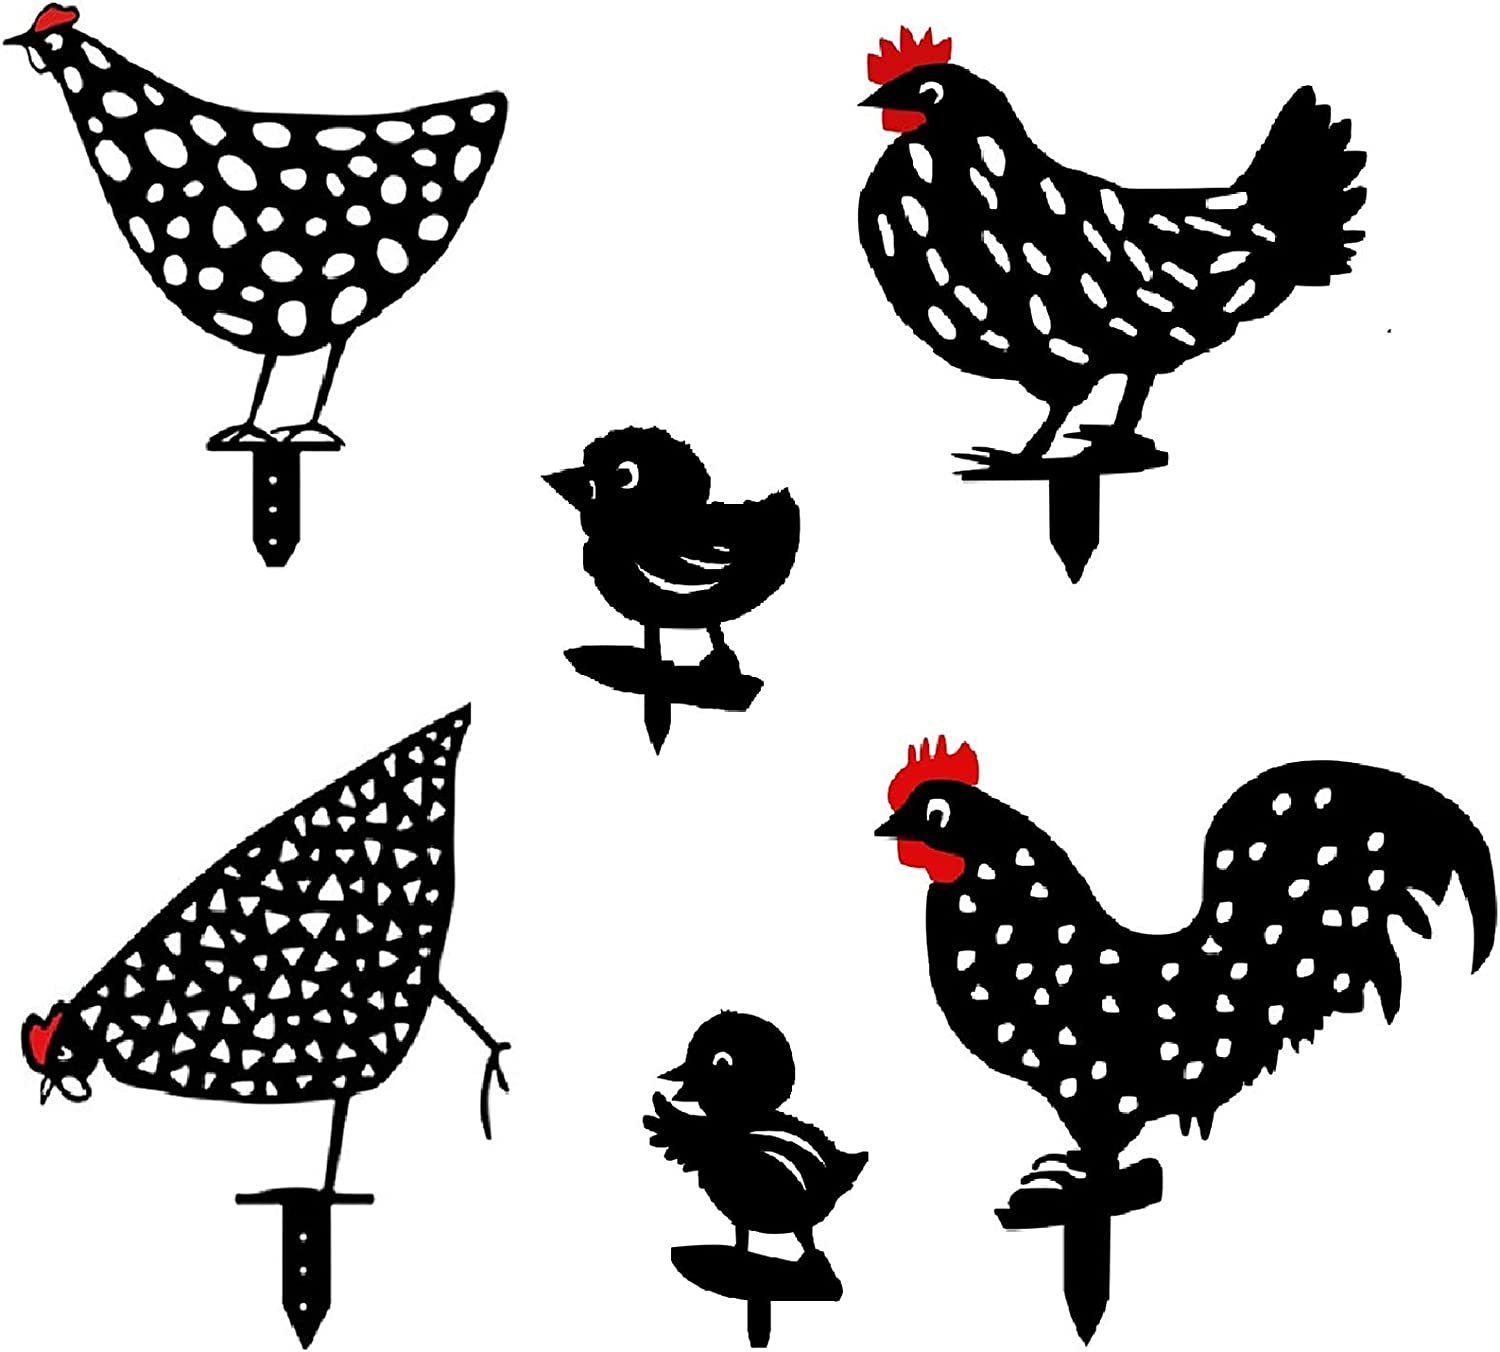 Ujuuu 6 PCS Chicken Silhouette Acrylic Garden Art Stake, Black Acrylic Rooster Hen Chick Animal Statue Insert Decoration for Garden Yard Lawn Decoration Outdoor Ornaments